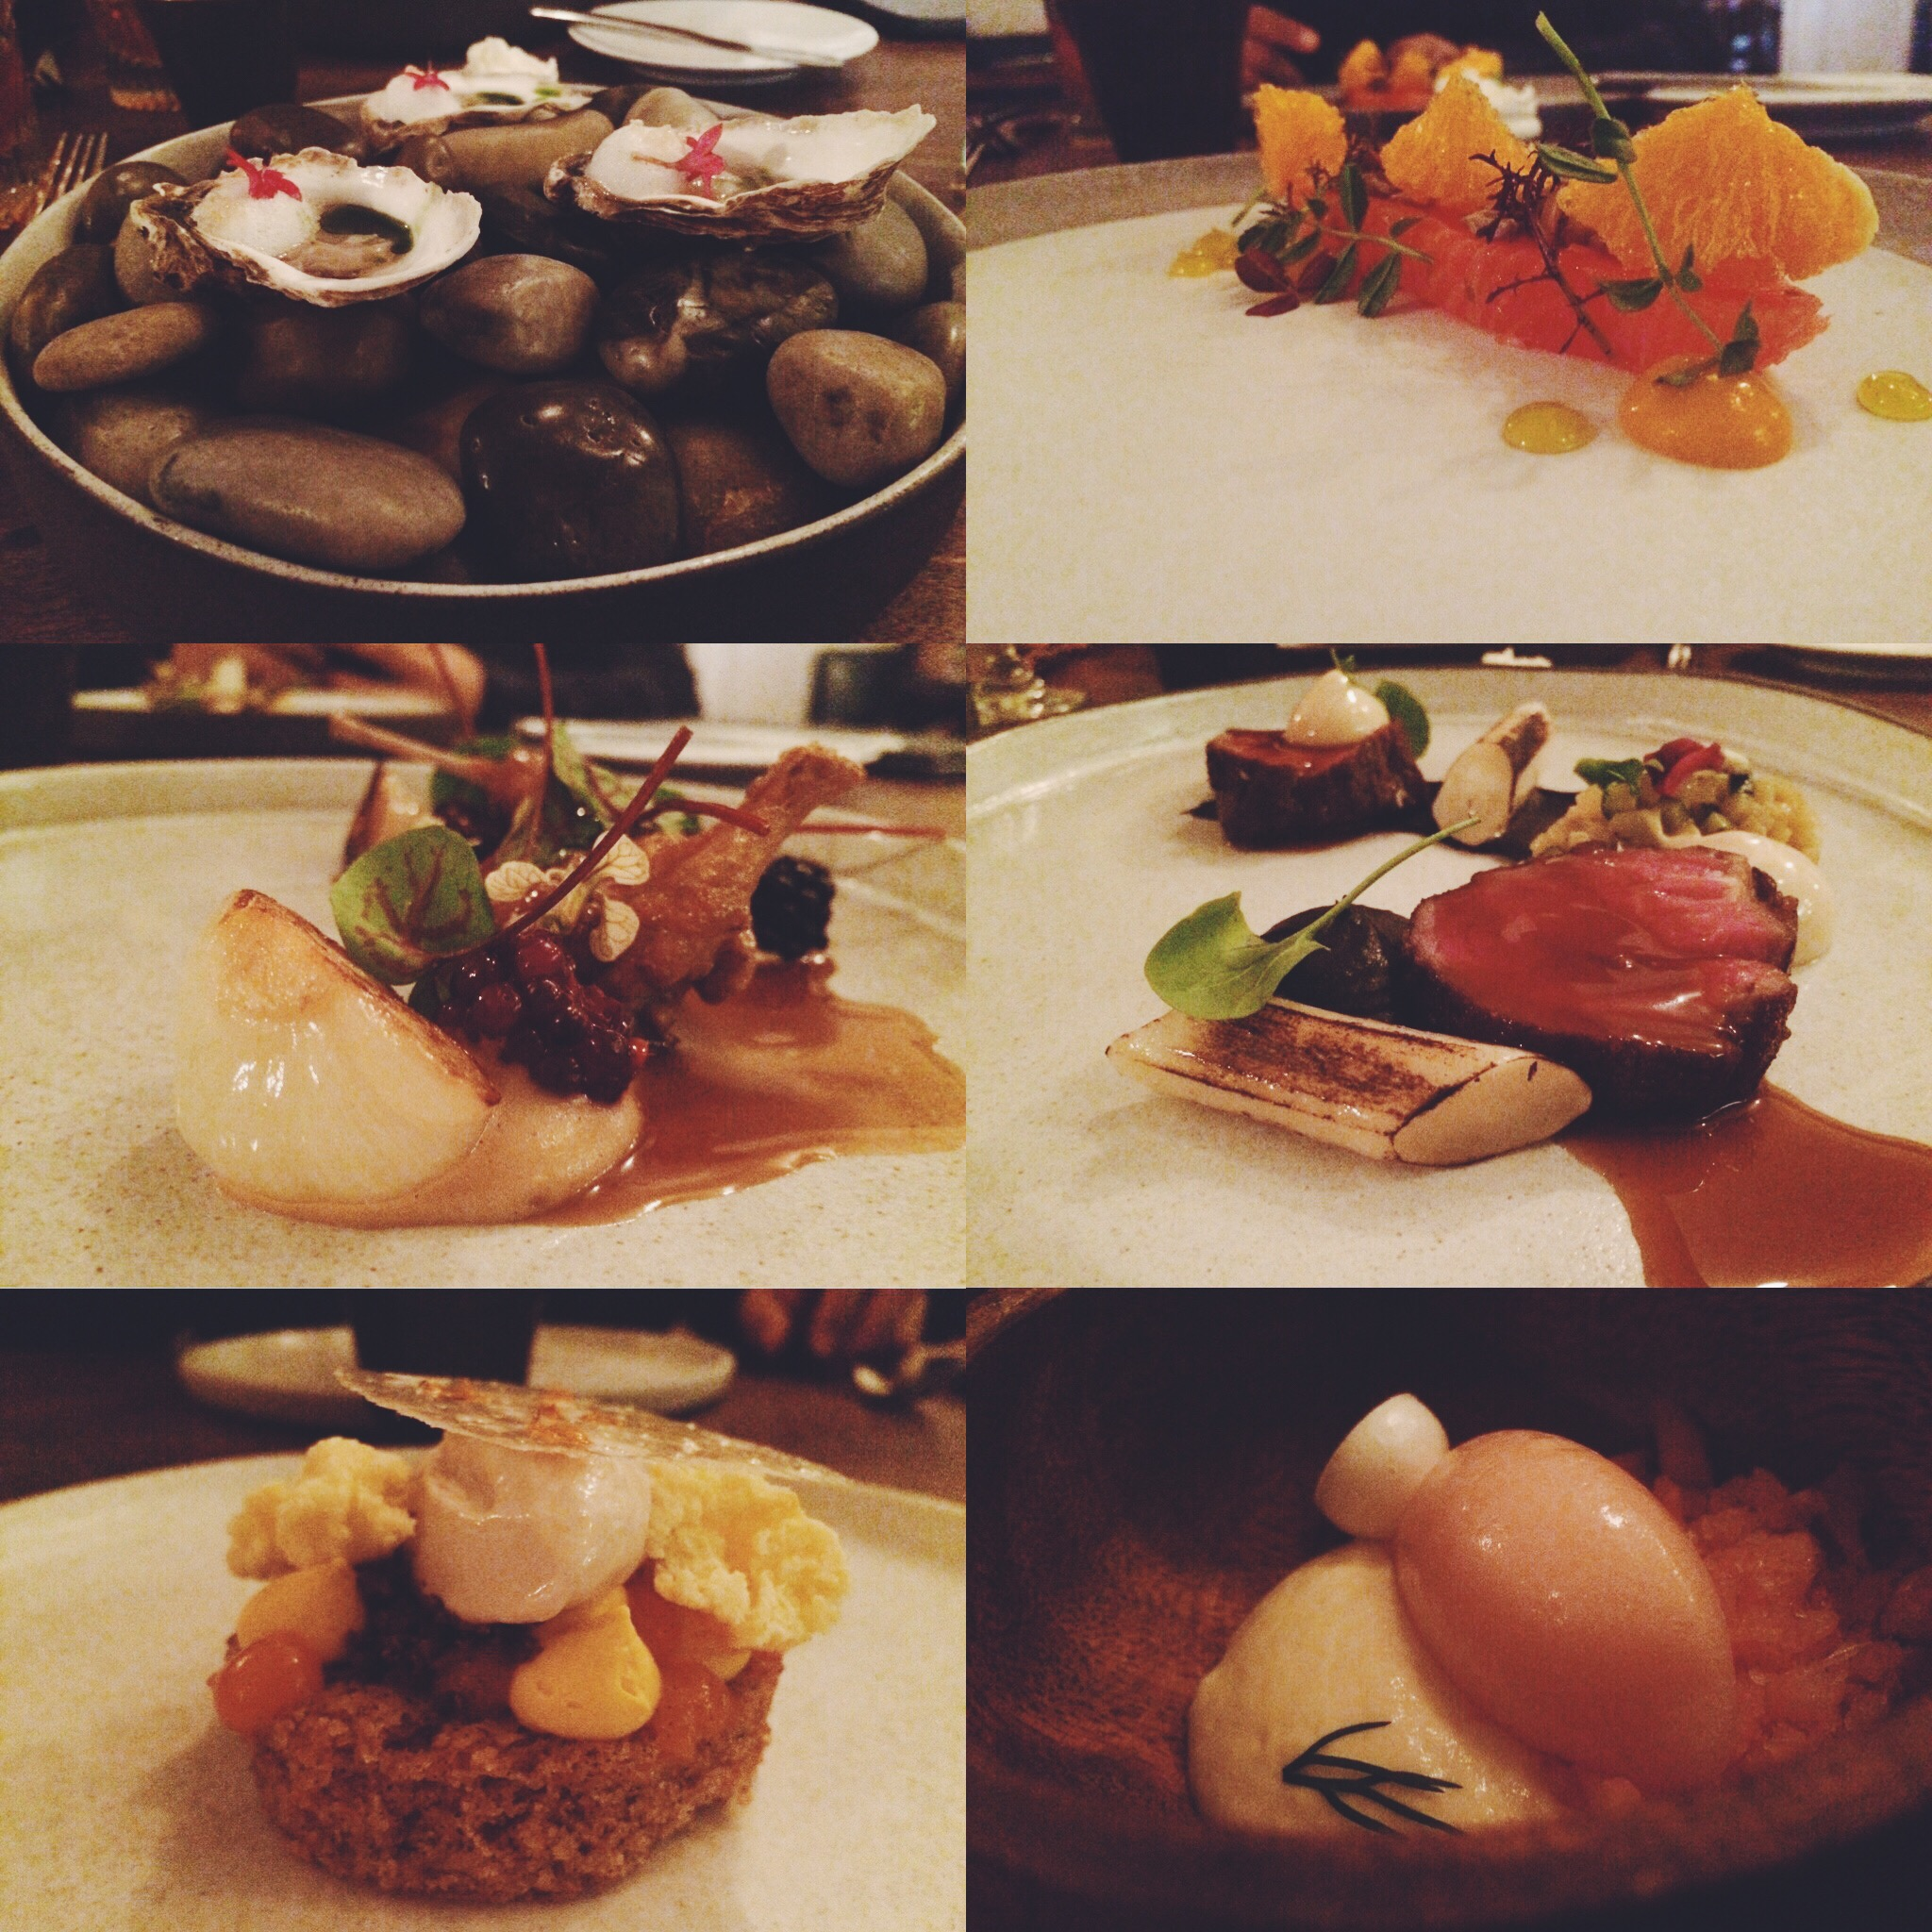 From left to right: Wild goose oysters with smoked vinaigrette, grapefruit and finger lime/ Ora King salmon, oil, seed, and herbs/Quail, blackberries, bread sauce and roasted onions/Cantebury angus, eggplant and Sauce Americaine/Grapefruit and dill/Carrot cake, curd and chai.